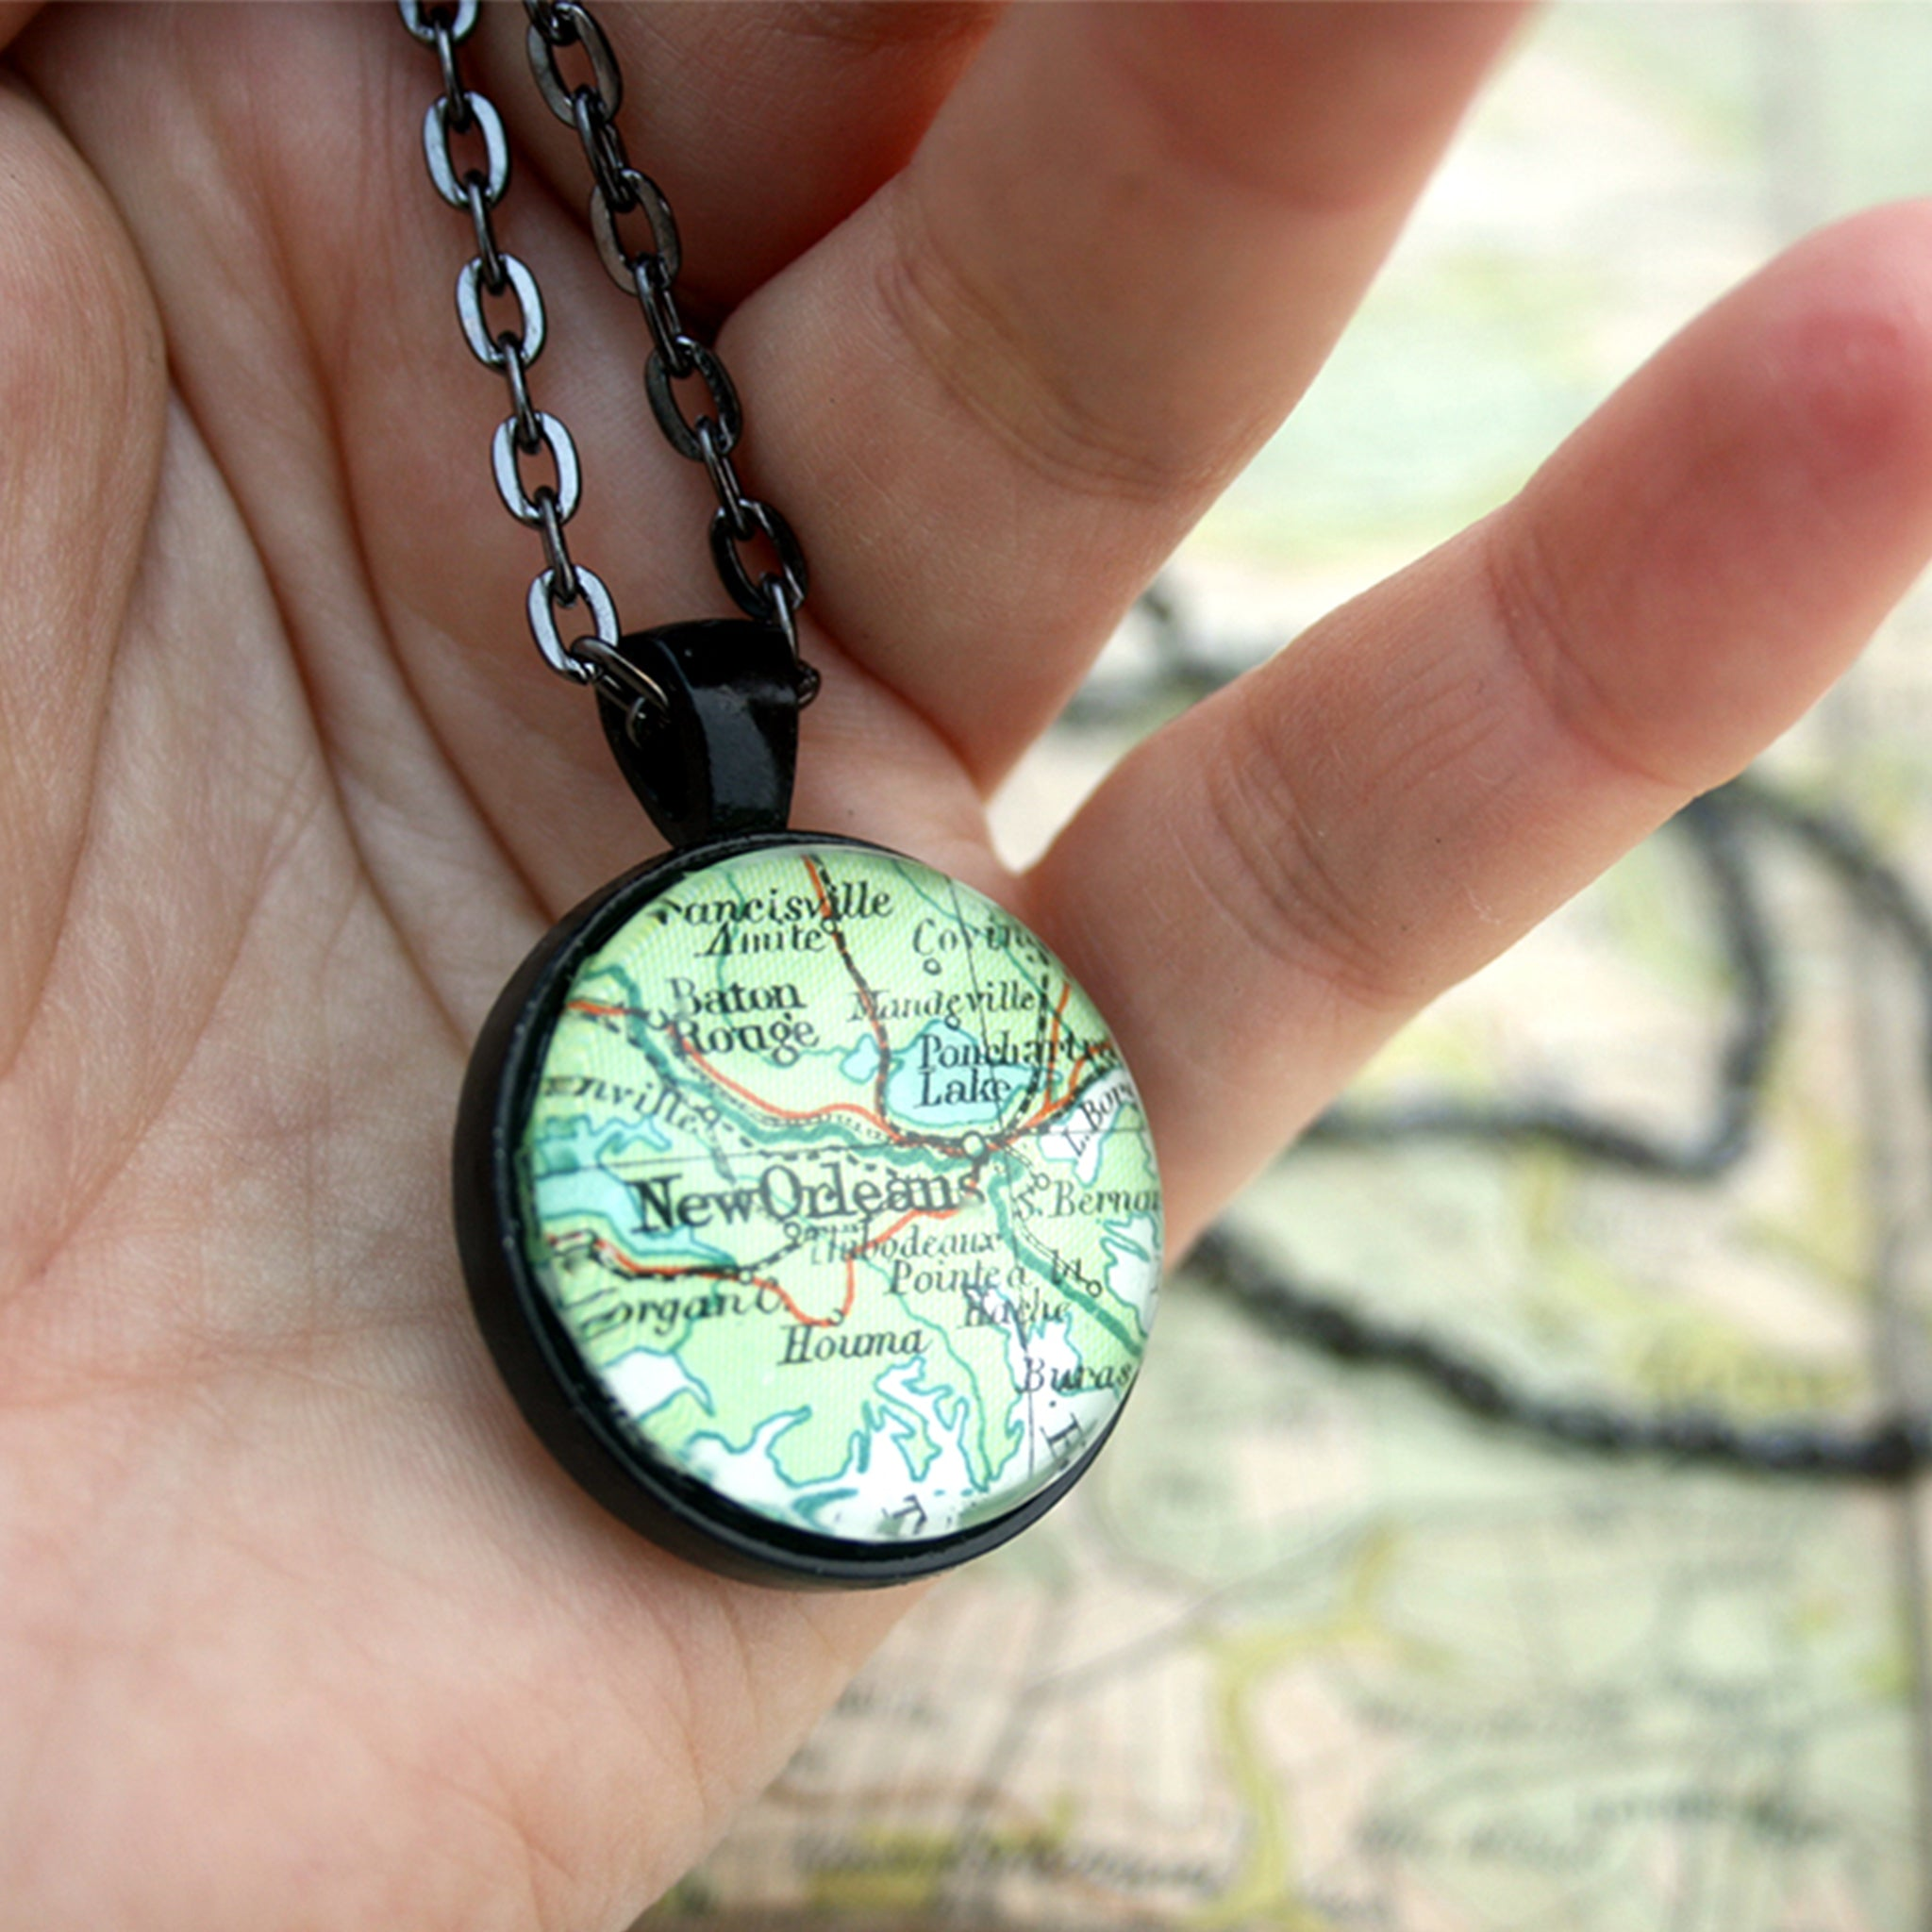 Hold in hand black double sided pendant necklace featuring map of New Orleans